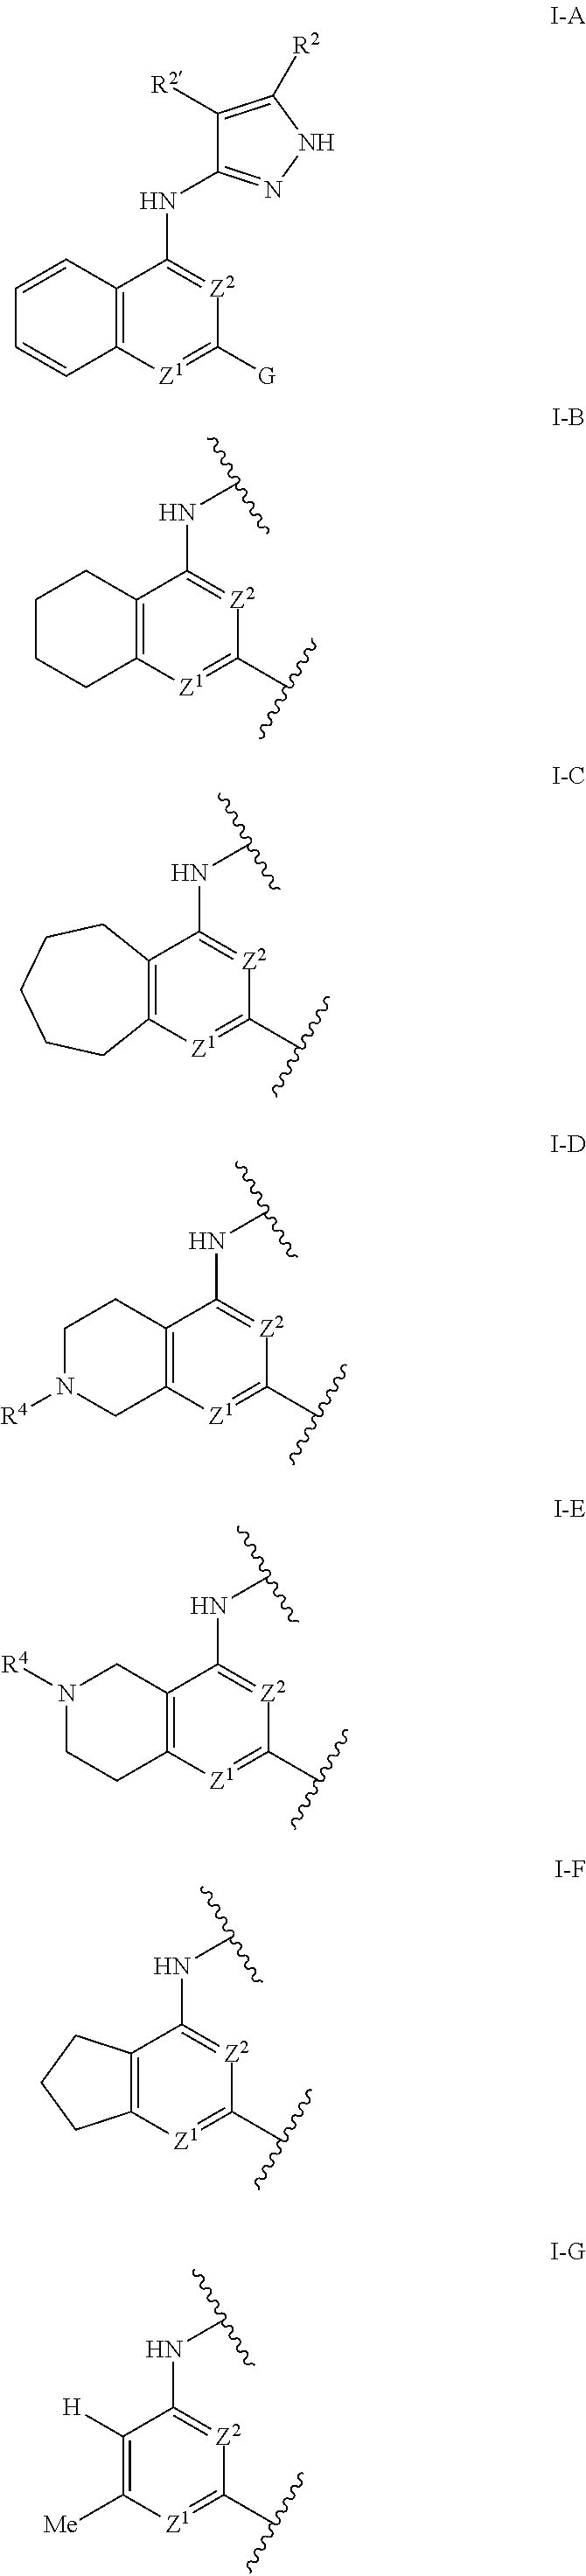 Us8633210b2 Triazole Compounds Useful As Protein Kinase Inhibitors Wiring Diagram Bolens 1476 Figure Us08633210 20140121 C00005